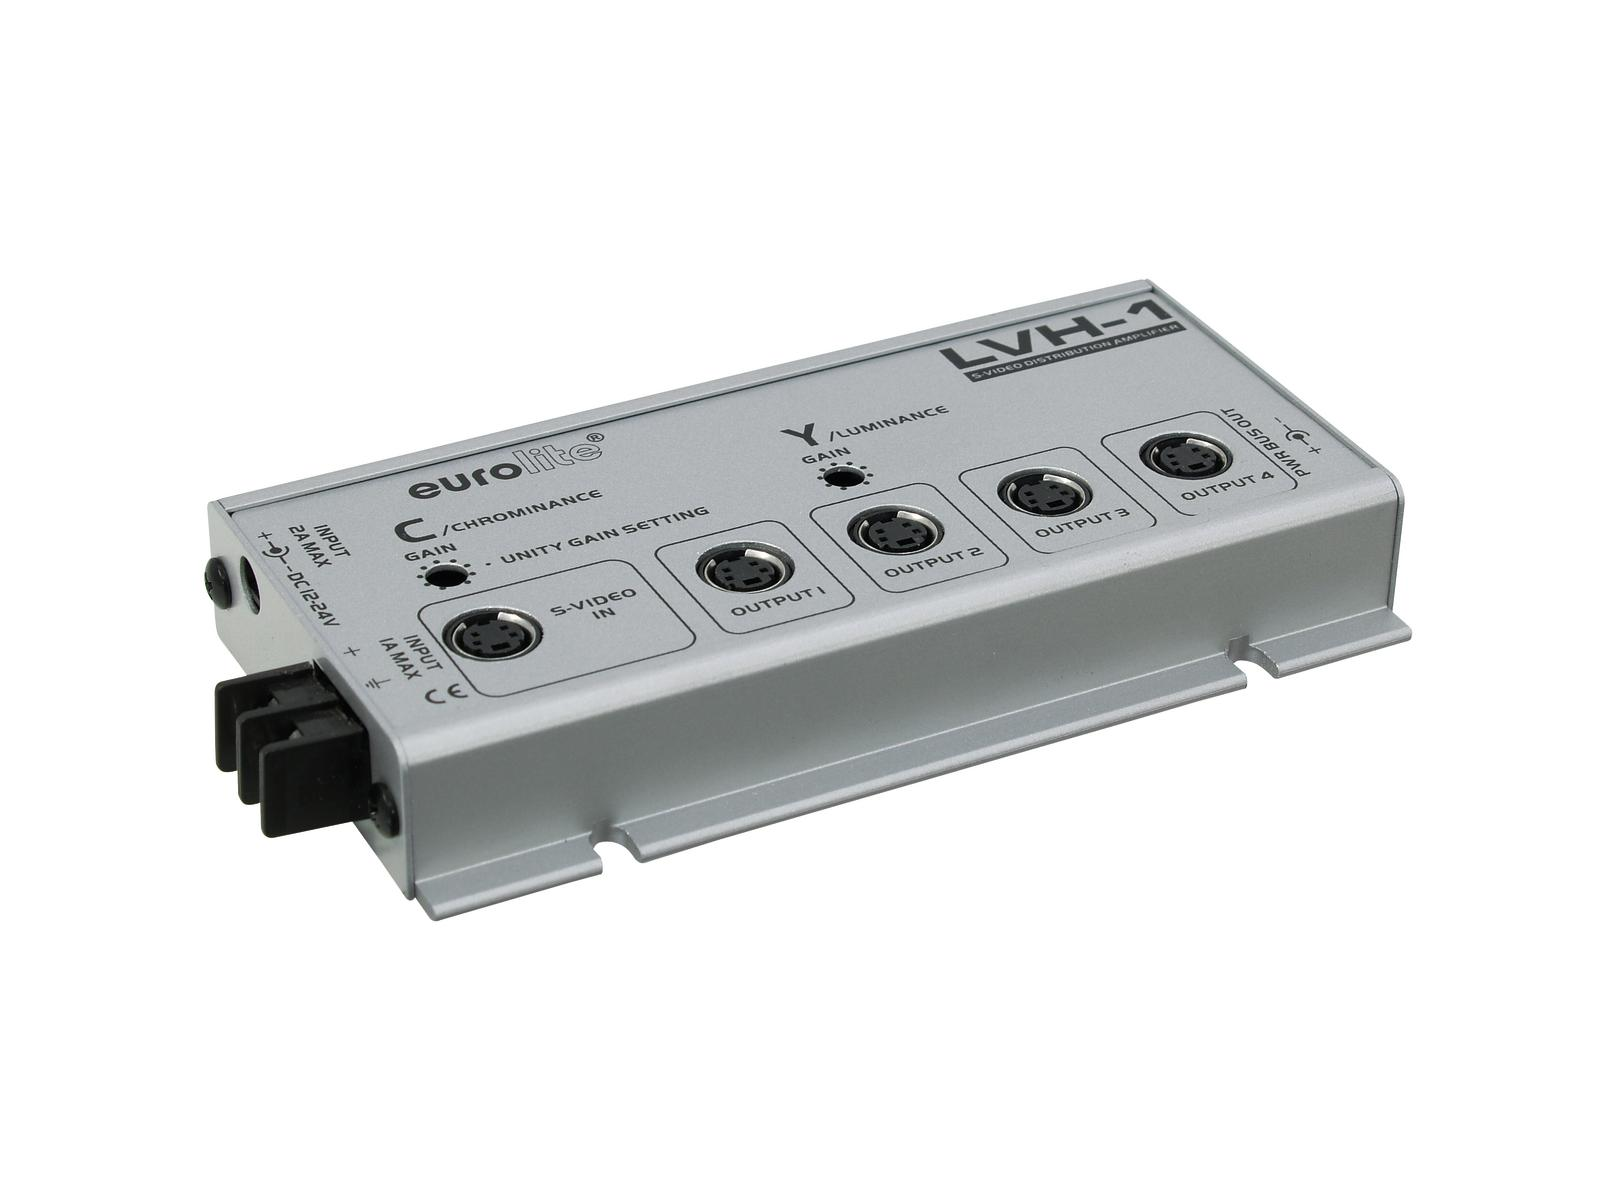 EUROLITE LVH-1 S-video amplificatore di distribuzione